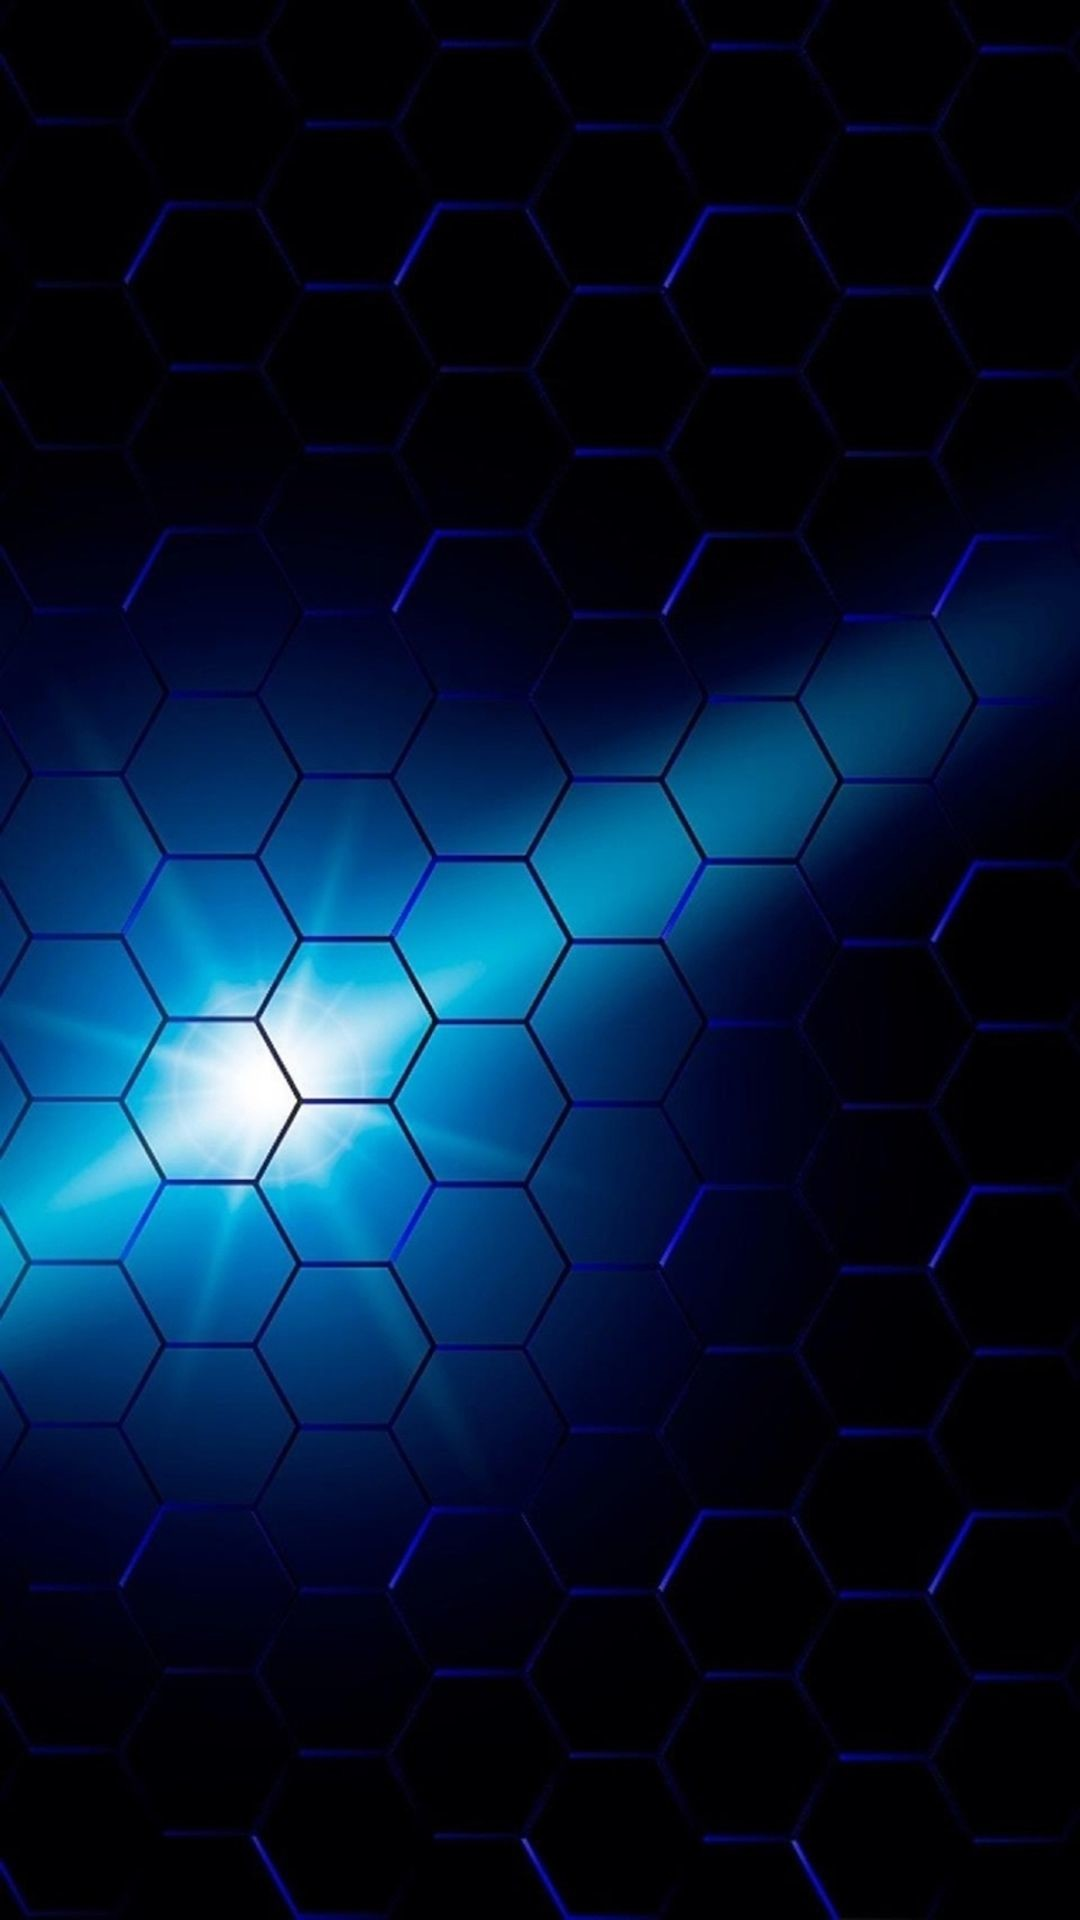 Res: 1080x1920, Blue Comb Background Light Luminescence iPhone 6 wallpaper